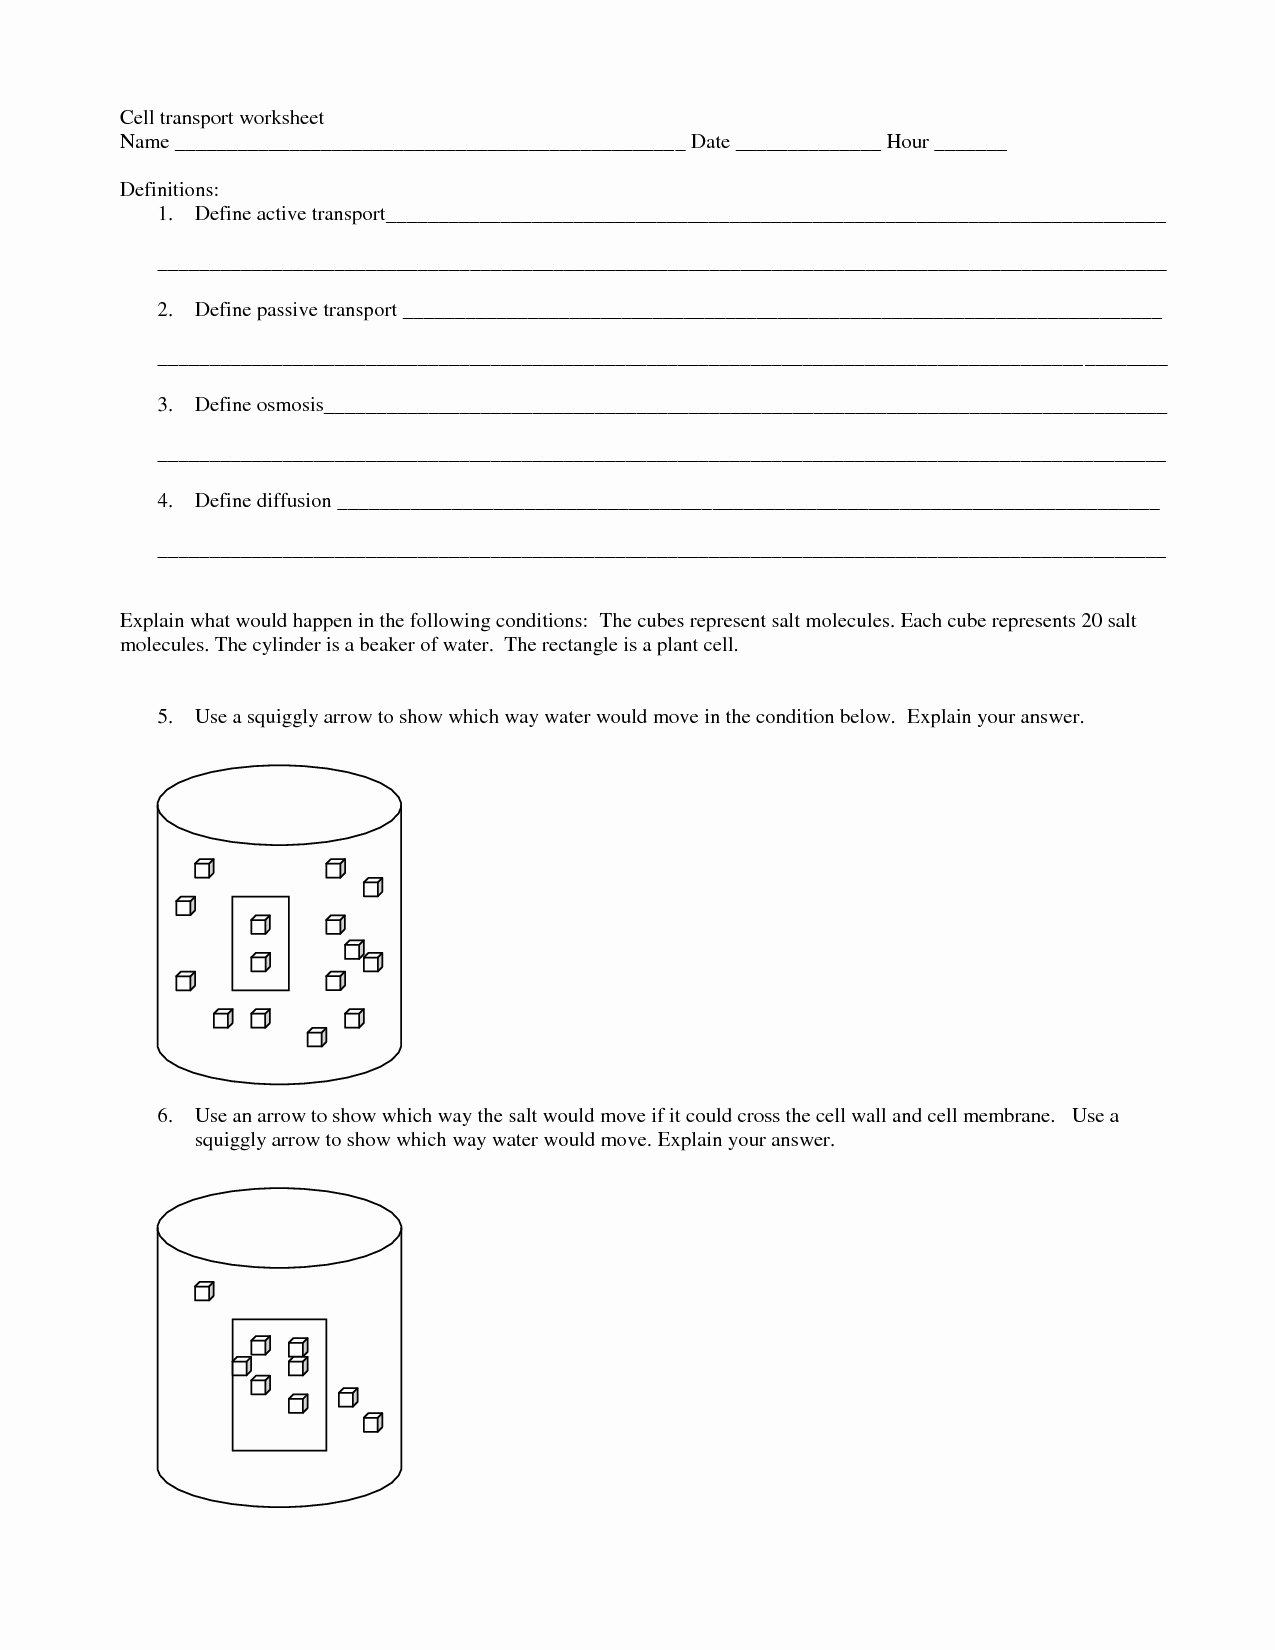 50 Cell Transport Worksheet Answers